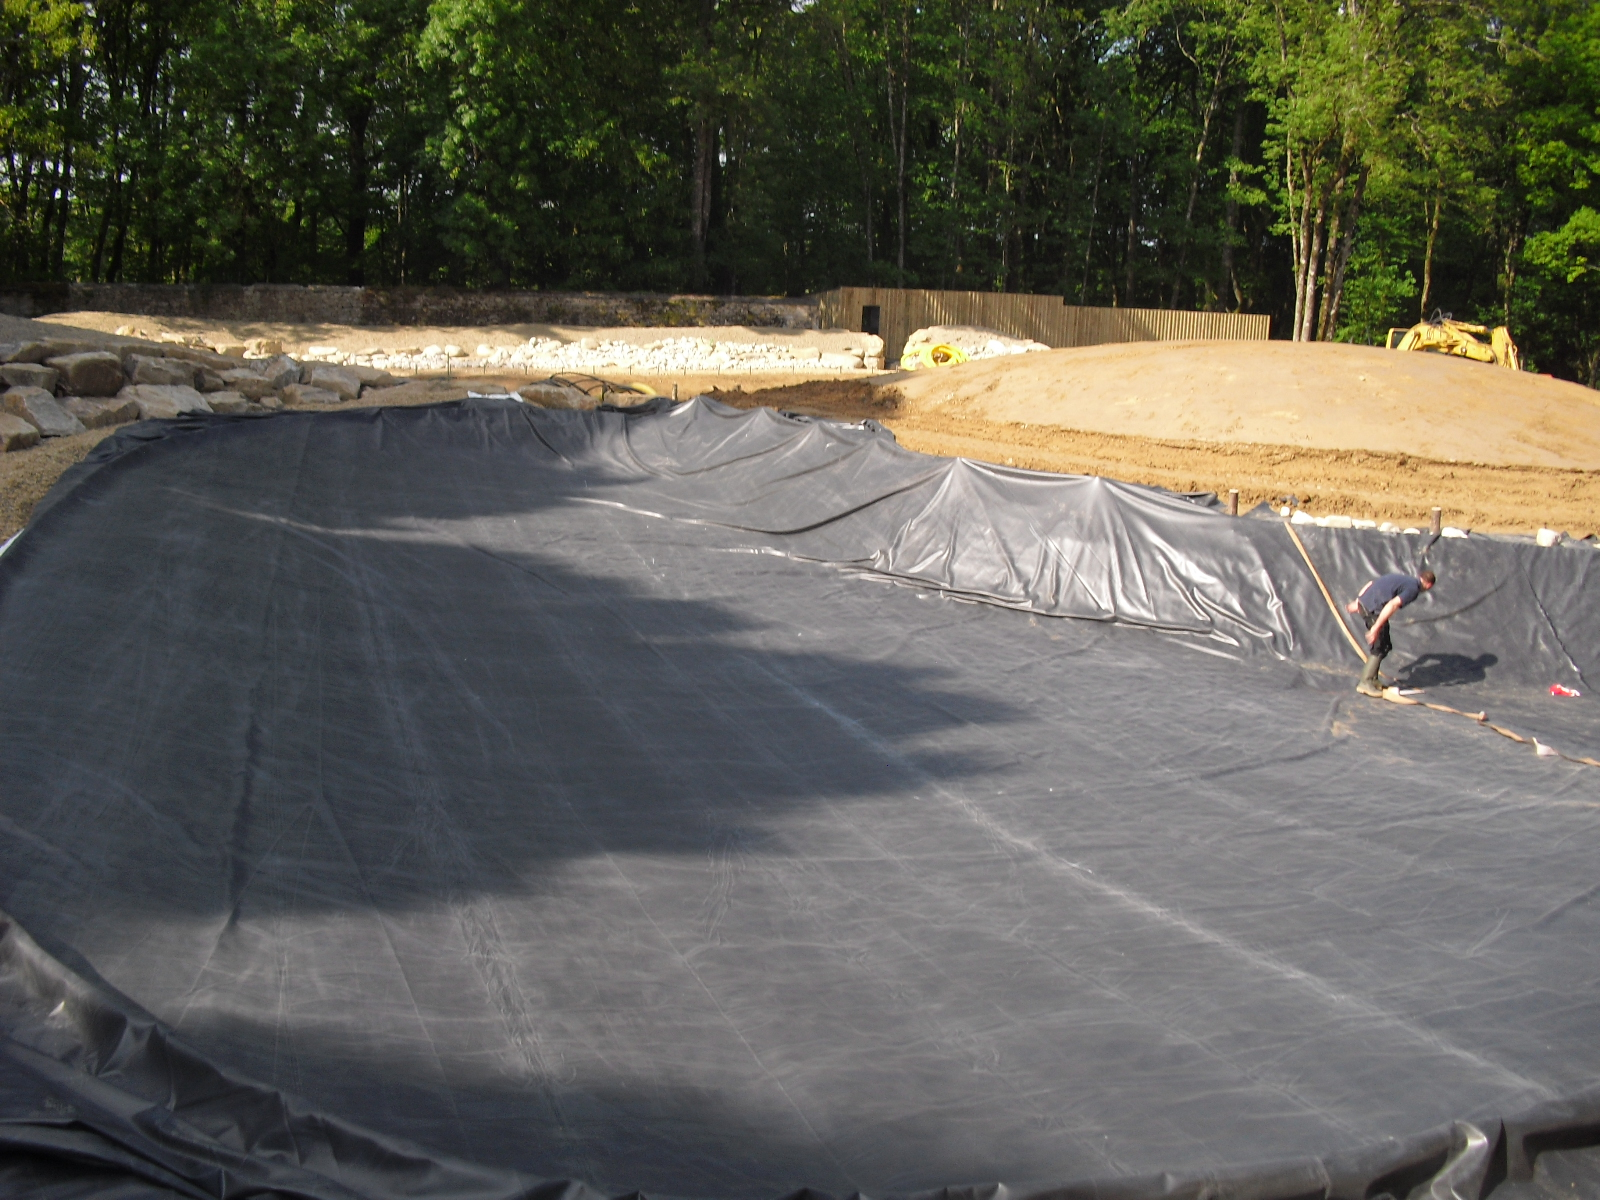 B che epdm en m pour l tanch it du bassin de jardin for Epdm firestone bassin